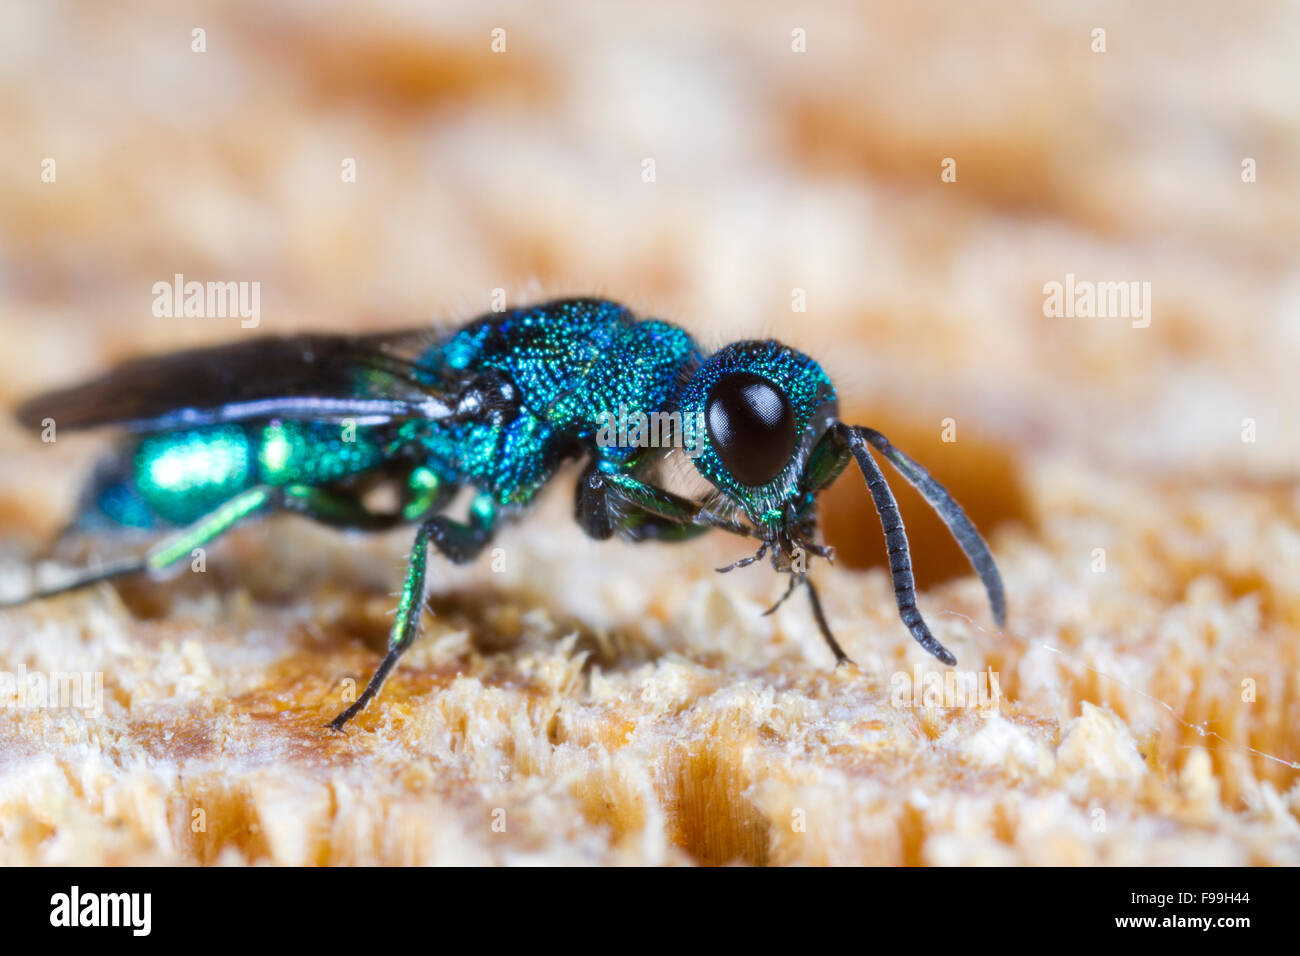 Blue Jewel or Cuckoo Wasp (Trichrysis cyanea) adult female on wood, cleaning a leg. Powys, Wales. July.   Tree Wasp - Stock Image